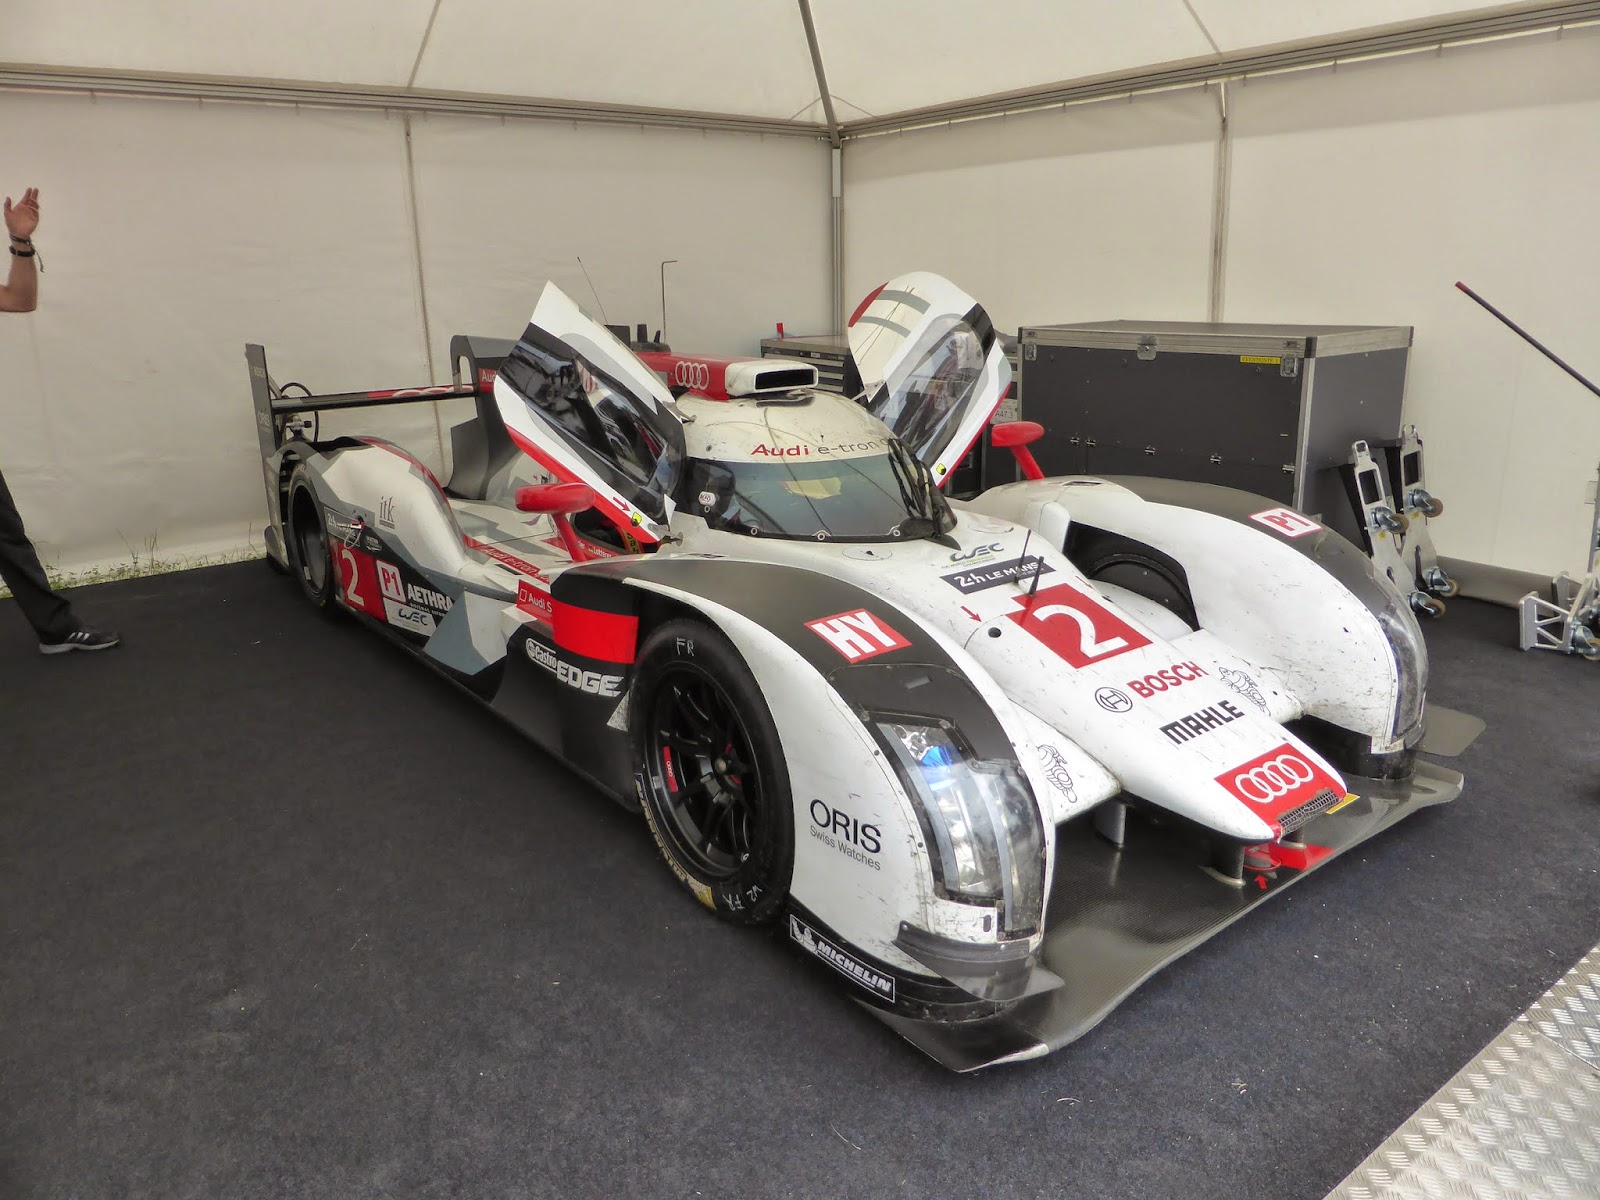 Audi R18 e-tron quattro.  This thing won the 2014 24 Hours of Le Mans